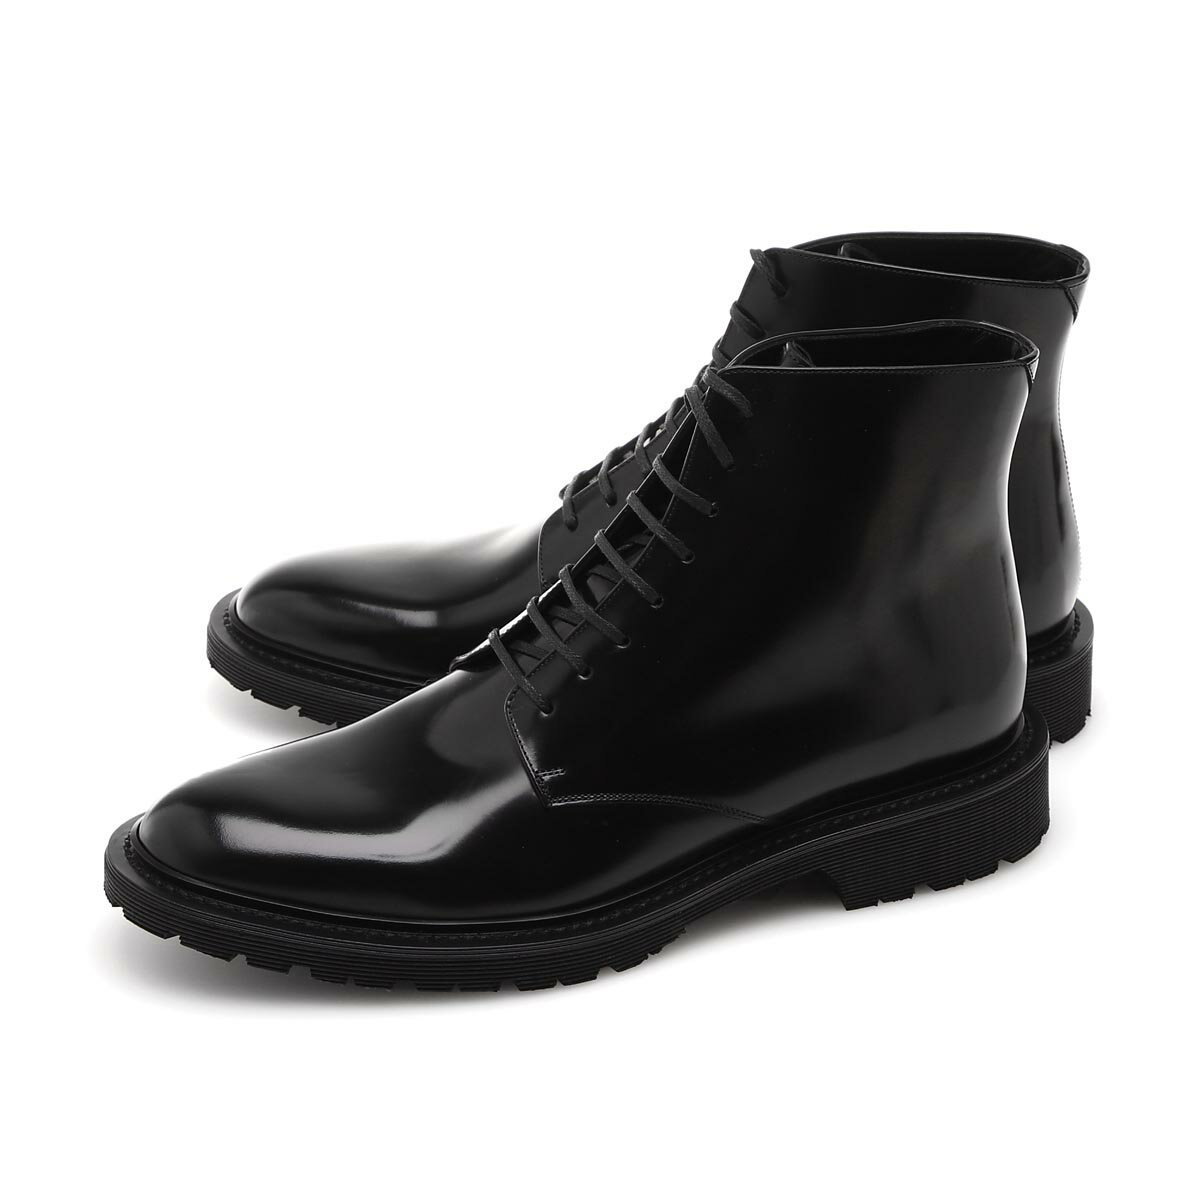 メンズ靴, その他  SAINT LAURENT PARIS 632364 1y000 1000 ARMY LACED BOOTS IN SMOOTH LEATHER